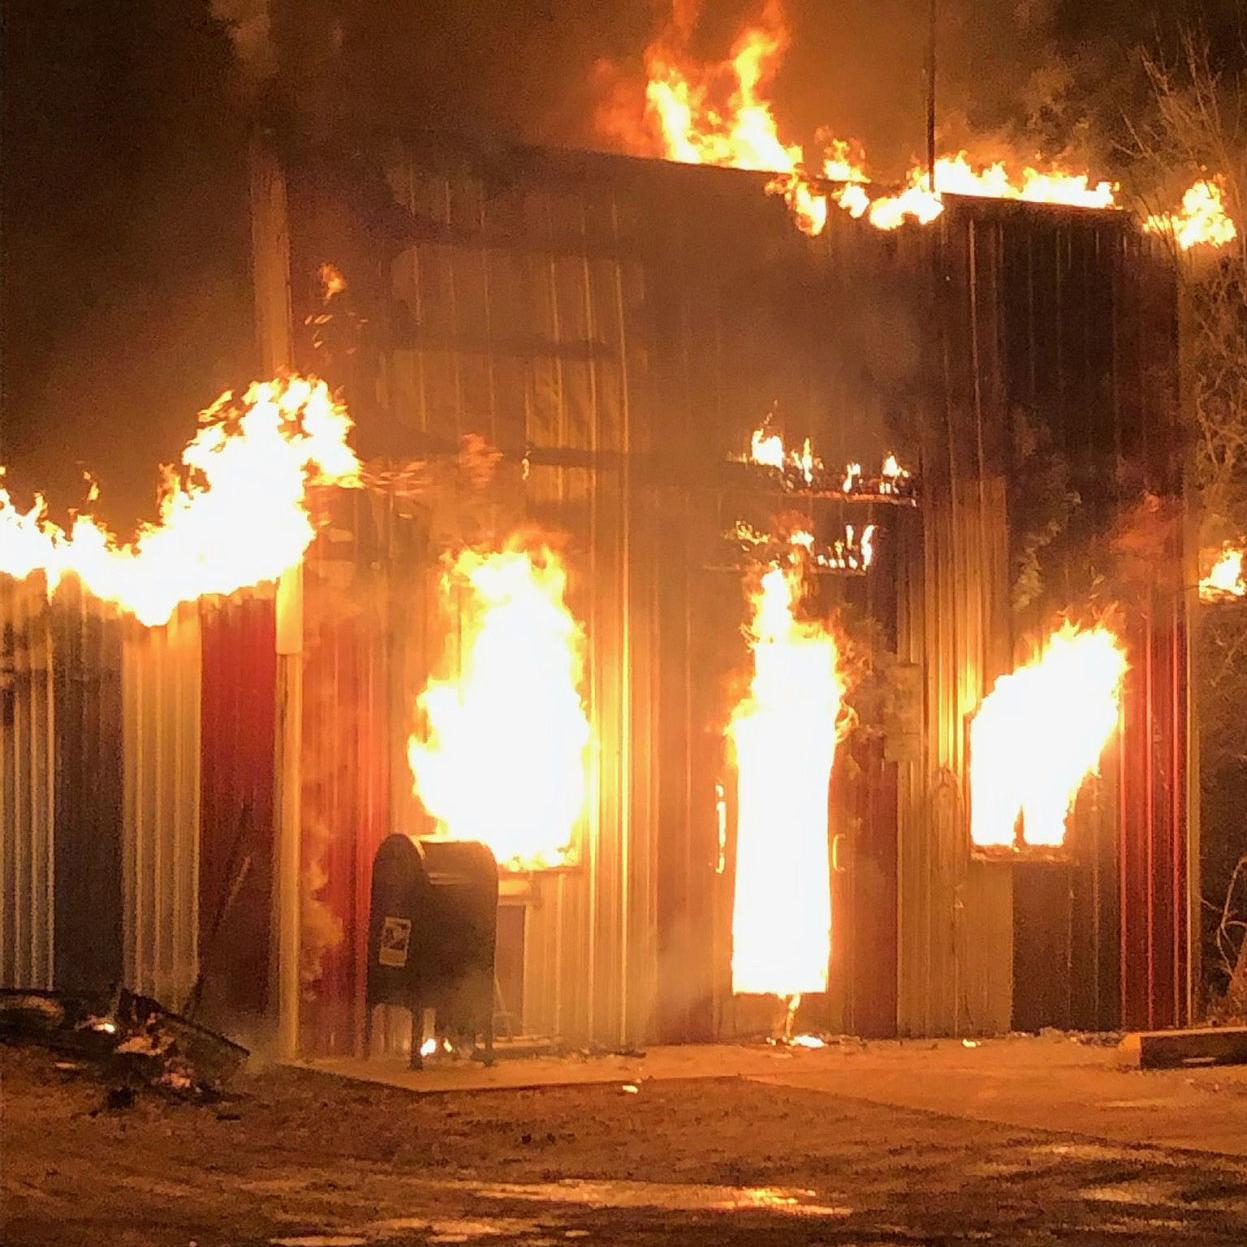 Fire Destroys Post Office In Town Formerly Known As Joe Montana